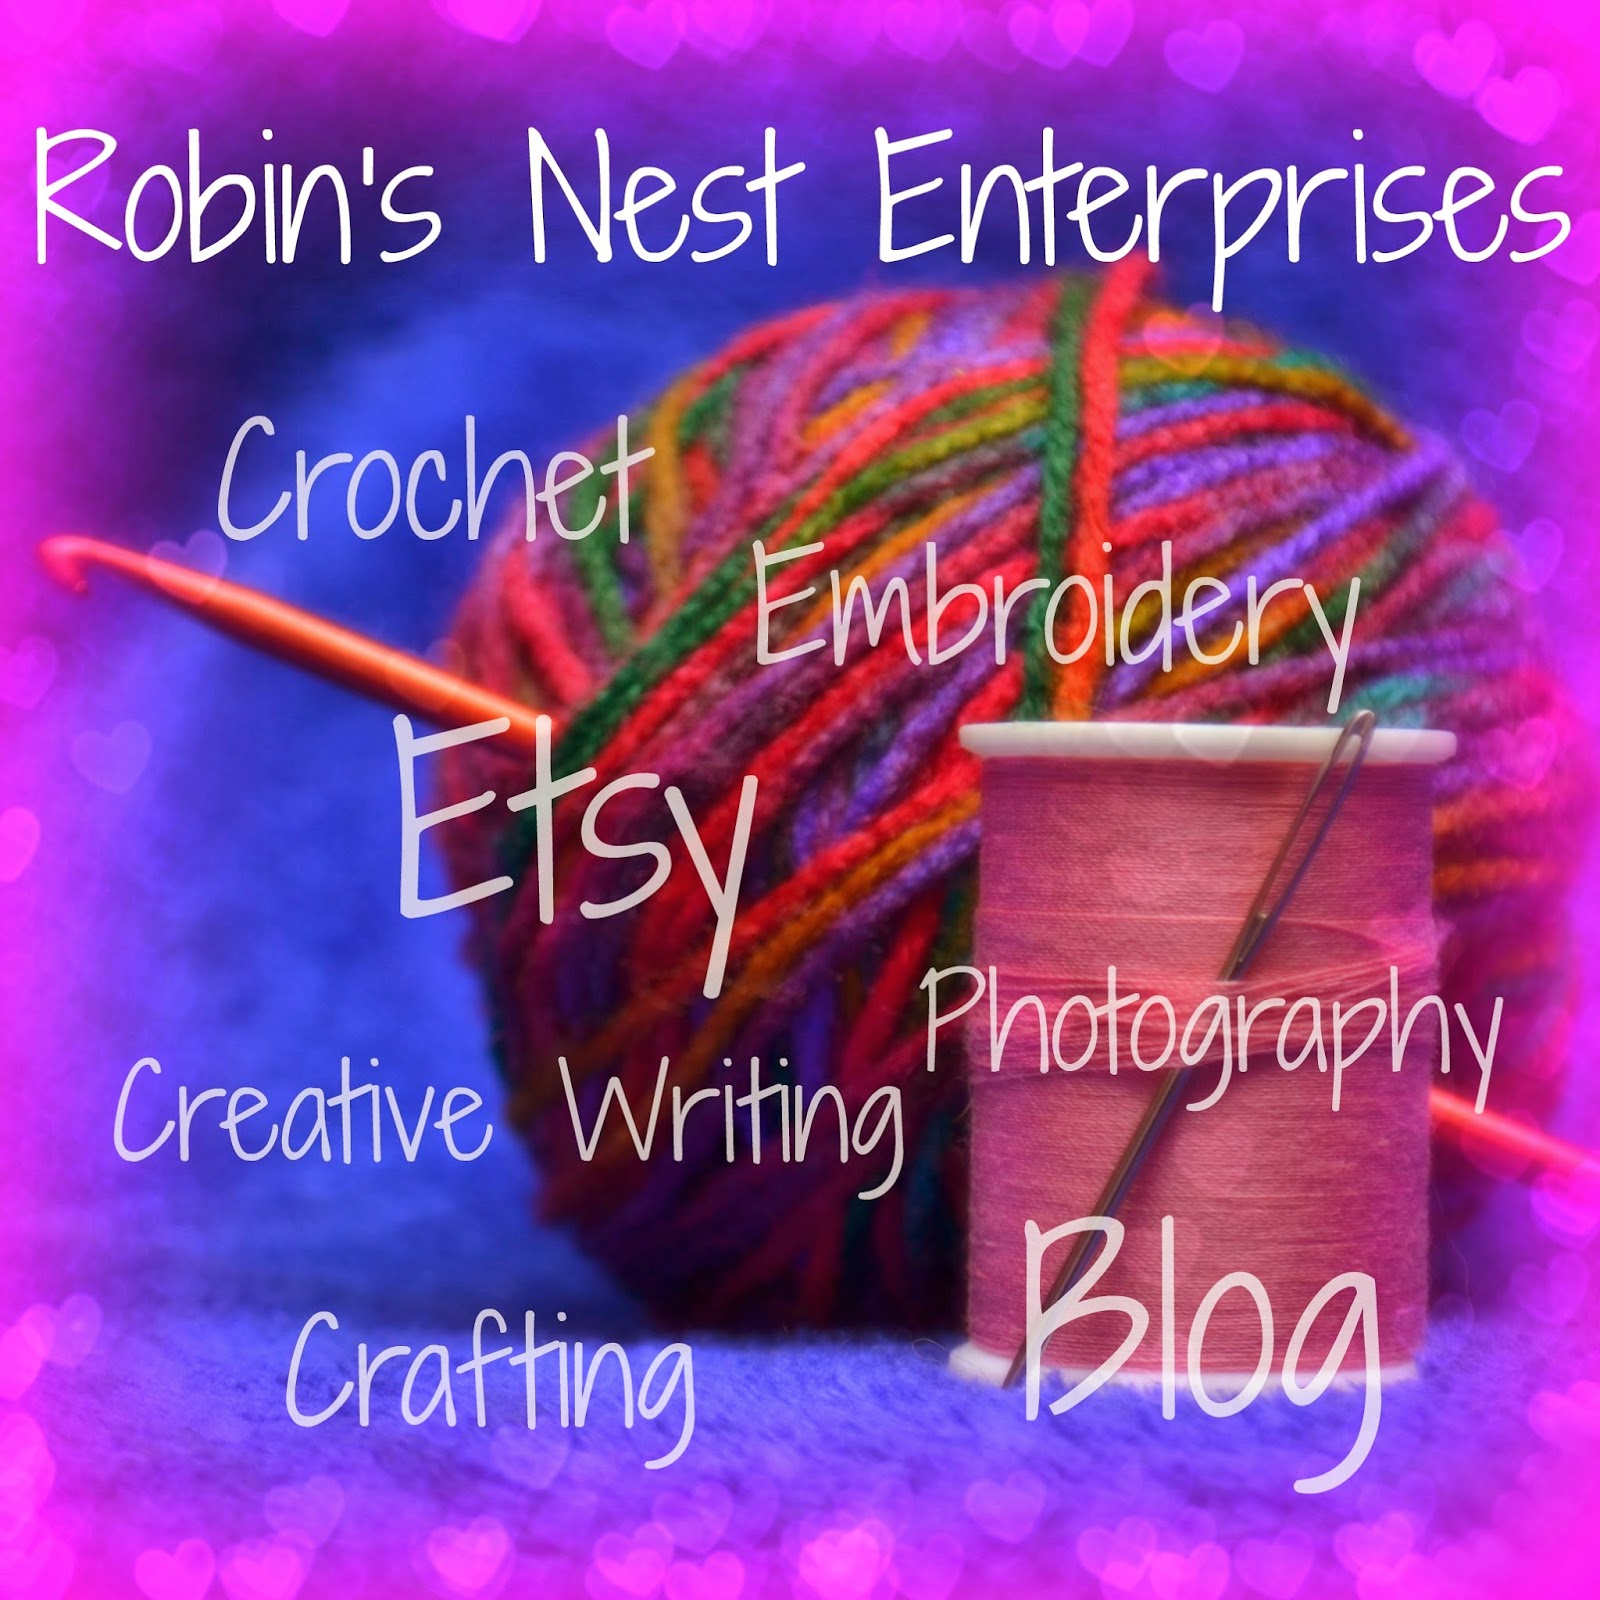 Robin's Nest Enterprises